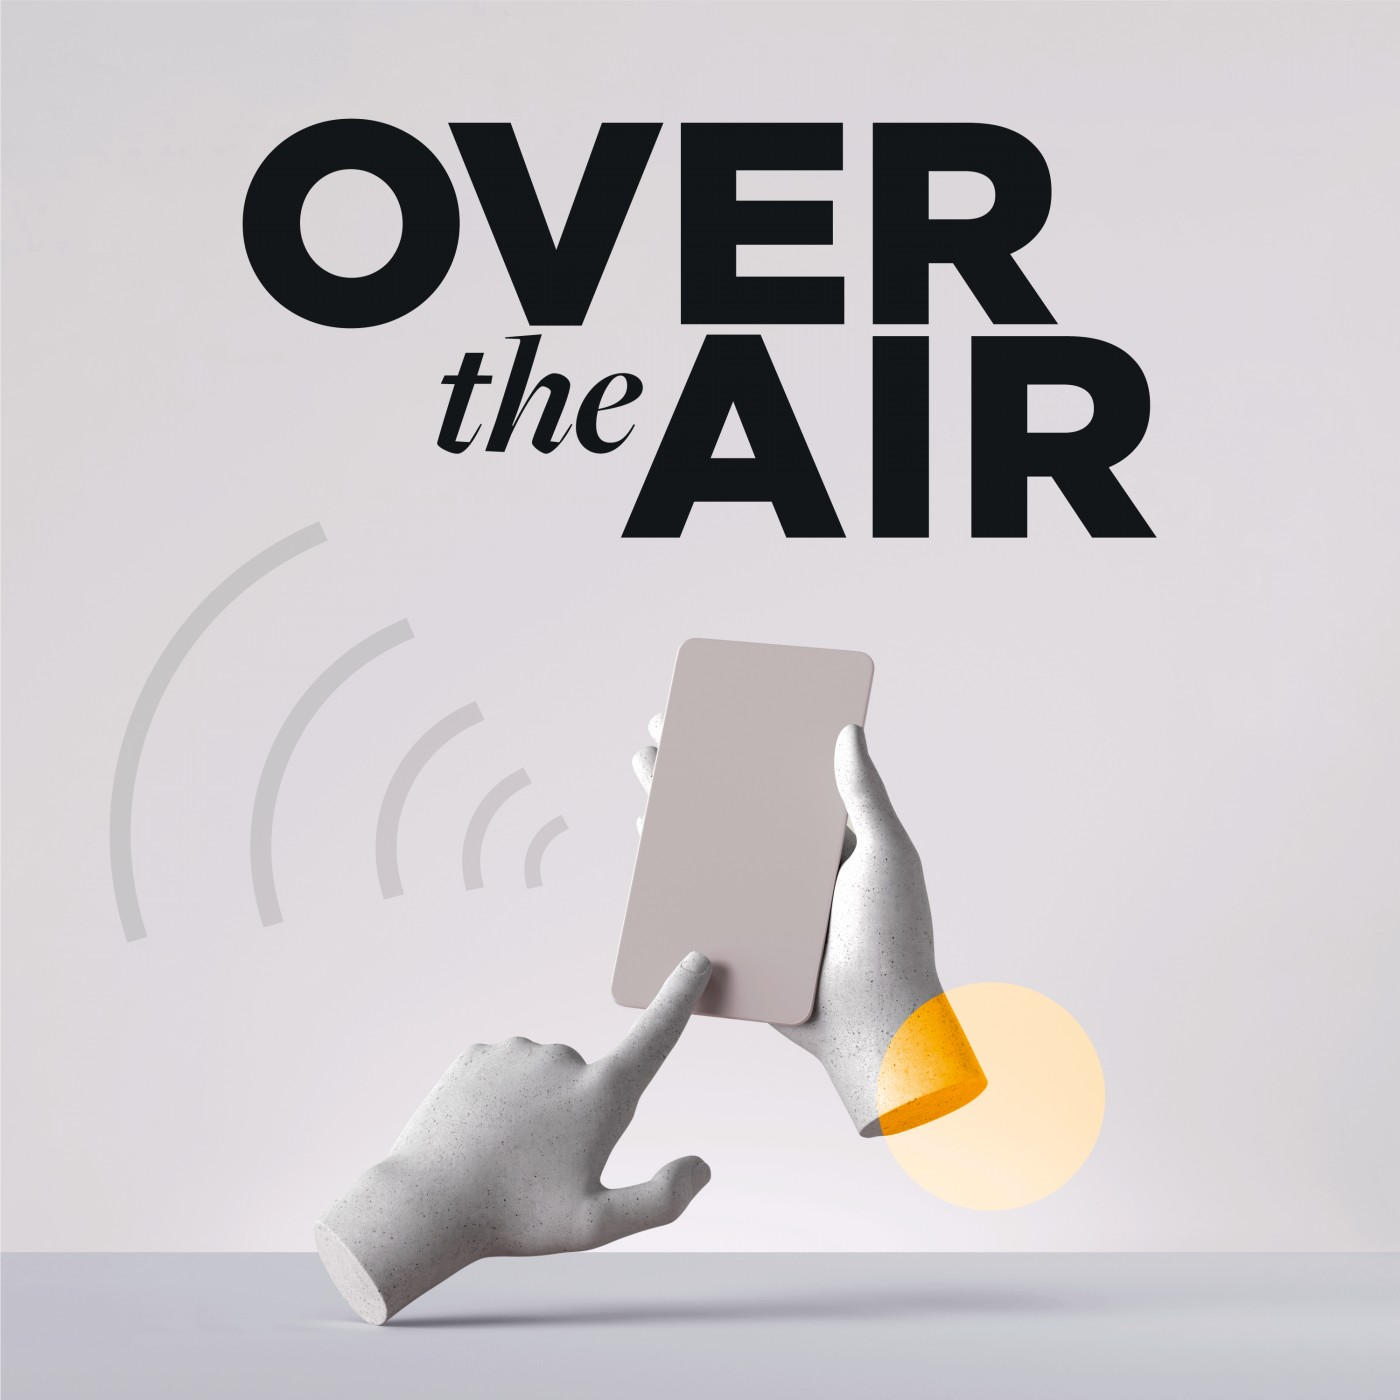 Over the Air - IoT, Connected Devices, & the Journey